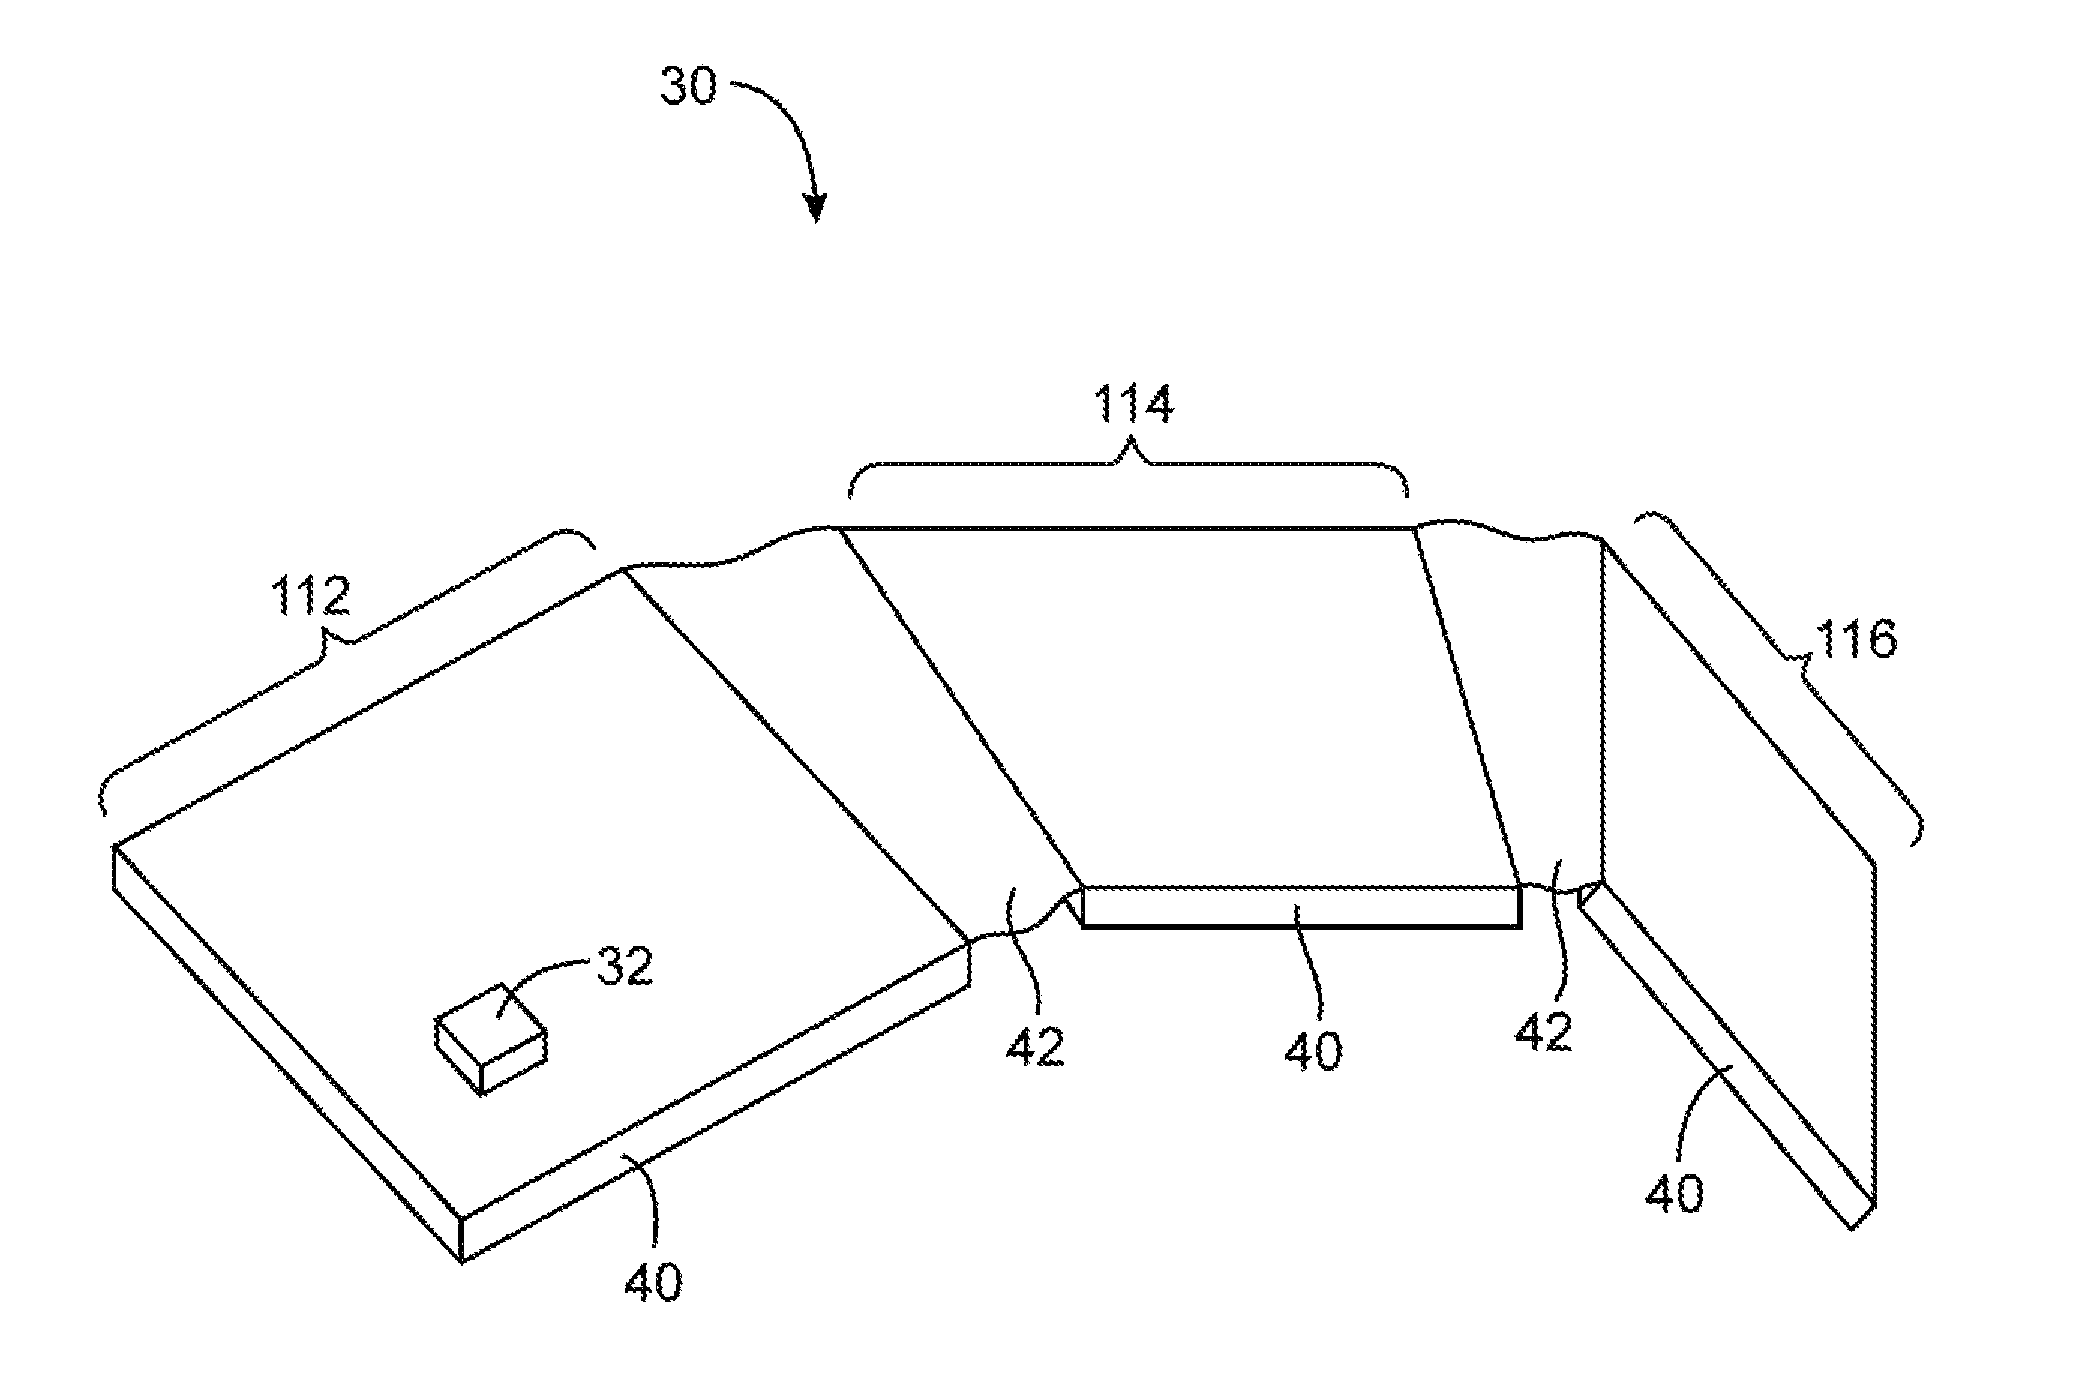 Foldable device illustration from patent US8929085B2